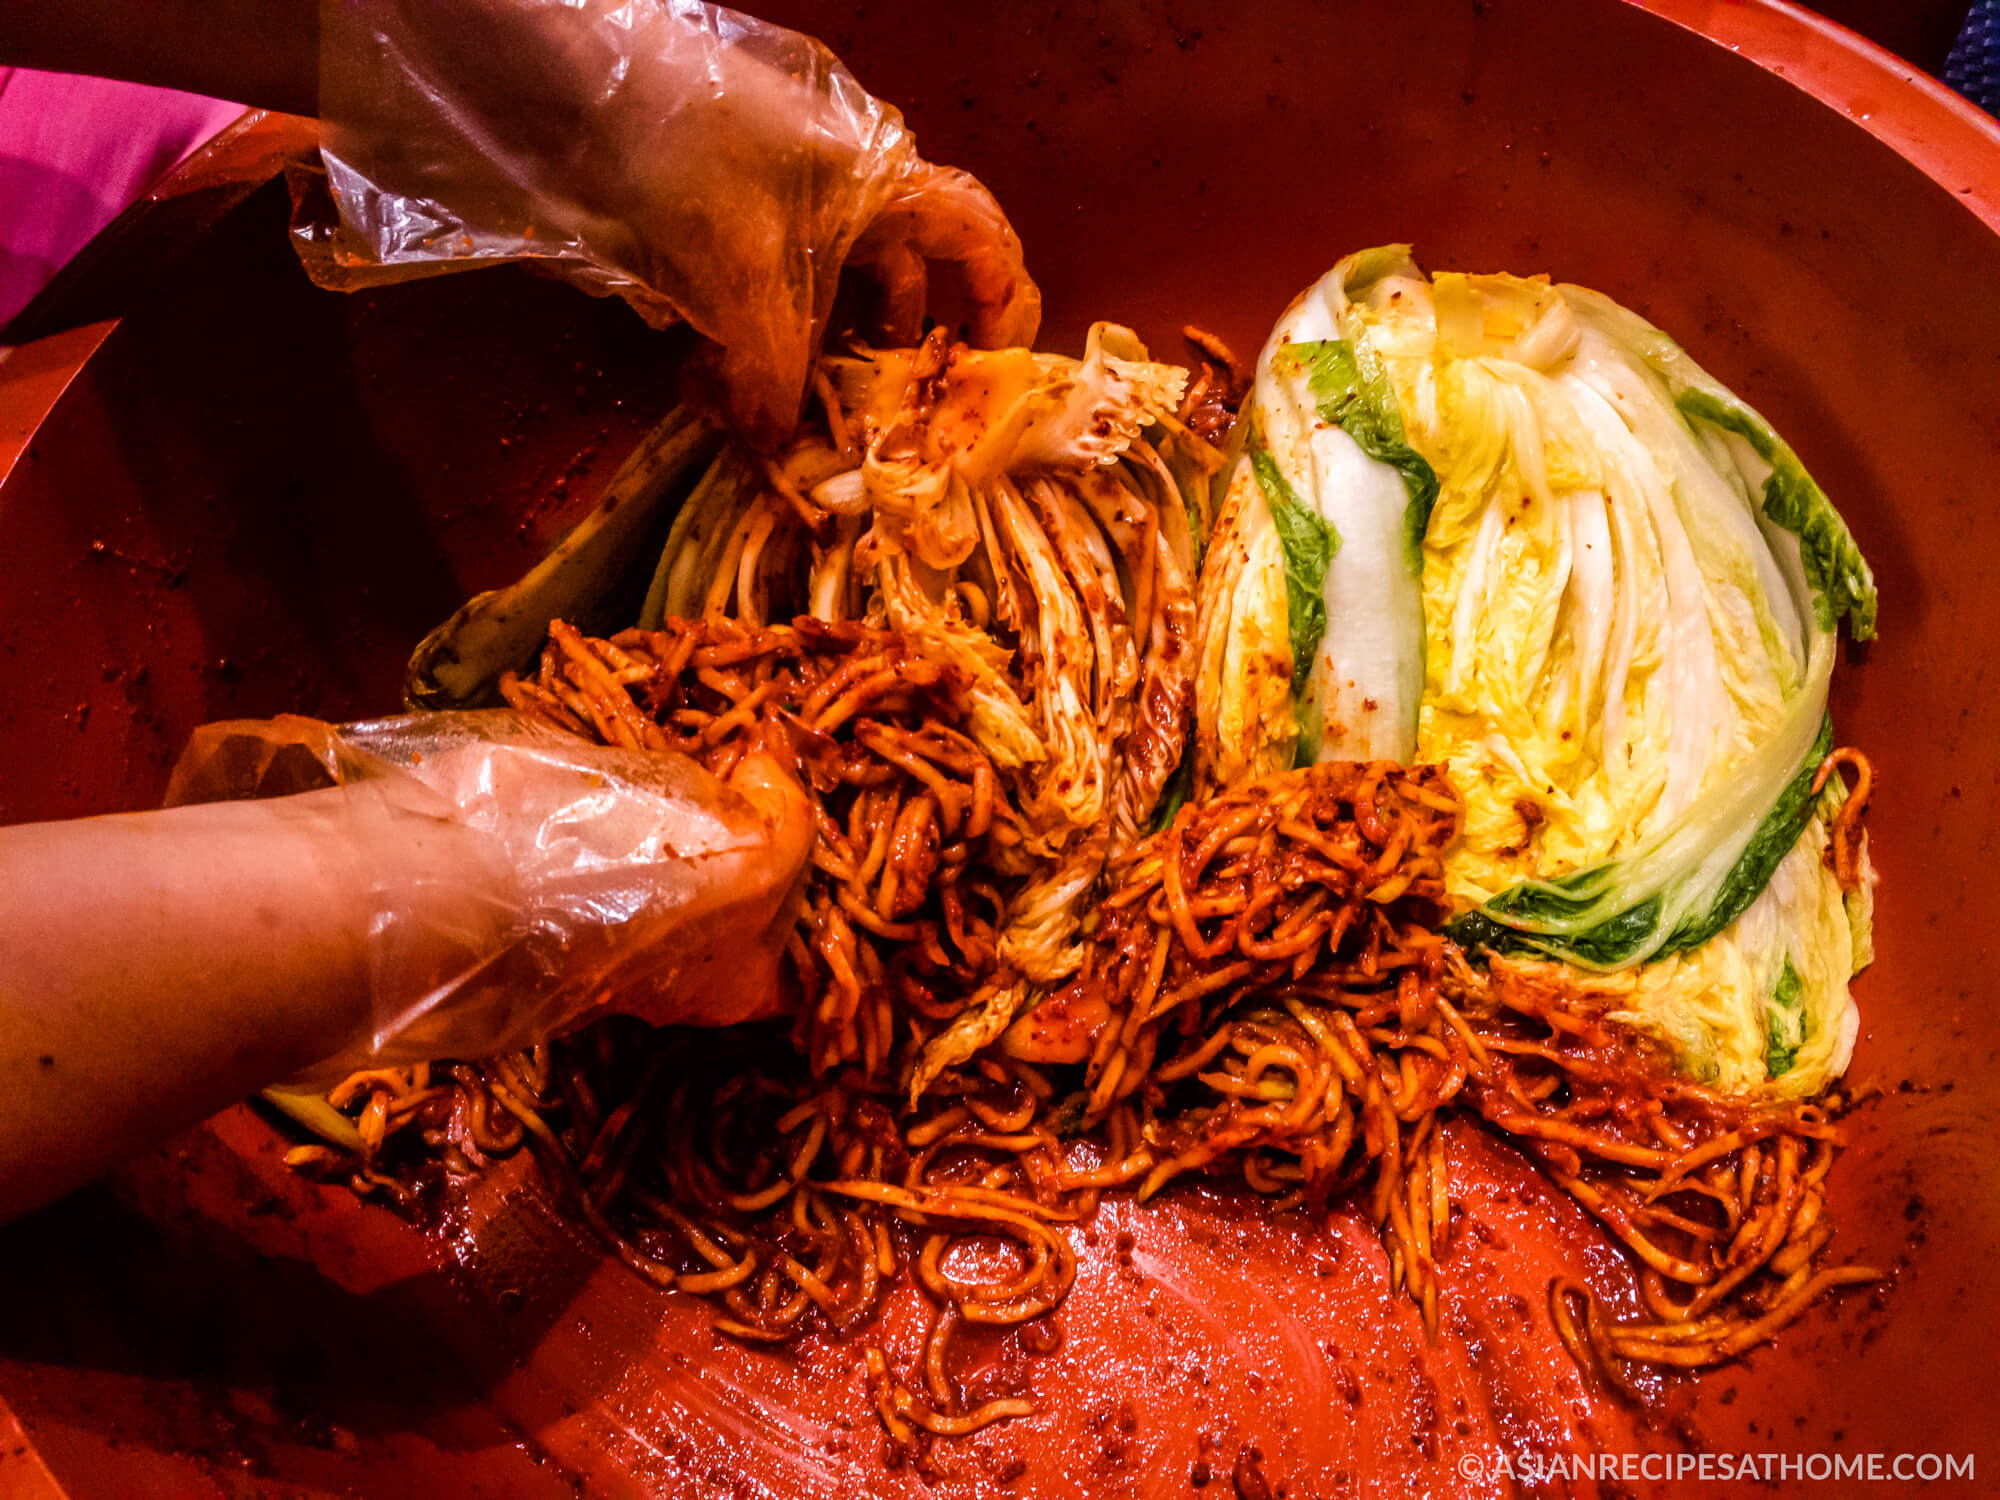 Making winter style kimchi gives us many months of kimchi - the deliciously funky, spicy, sour fermented vegetable side dish that accompanies every Korean meal - readily available whenever we want it.